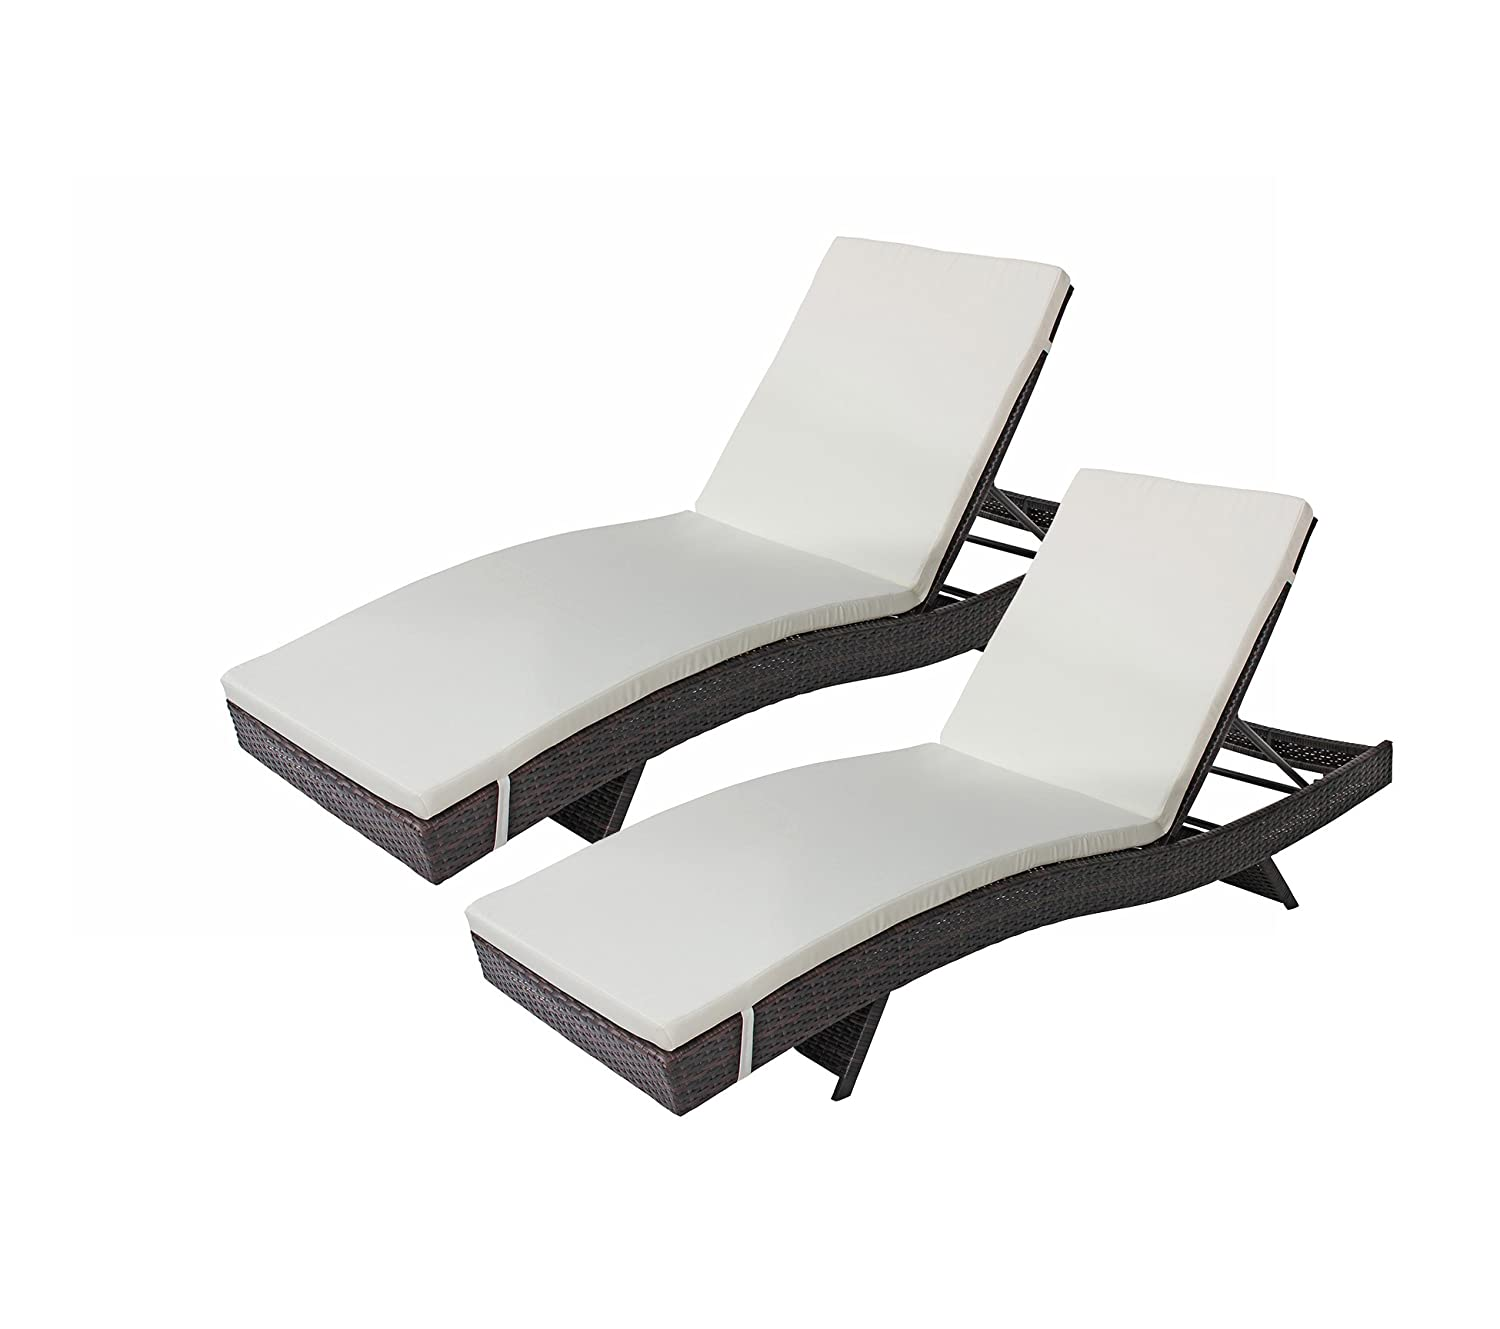 Amazon com 2 pack all weather modern outdoor patio chaise lounge chairs brown garden outdoor